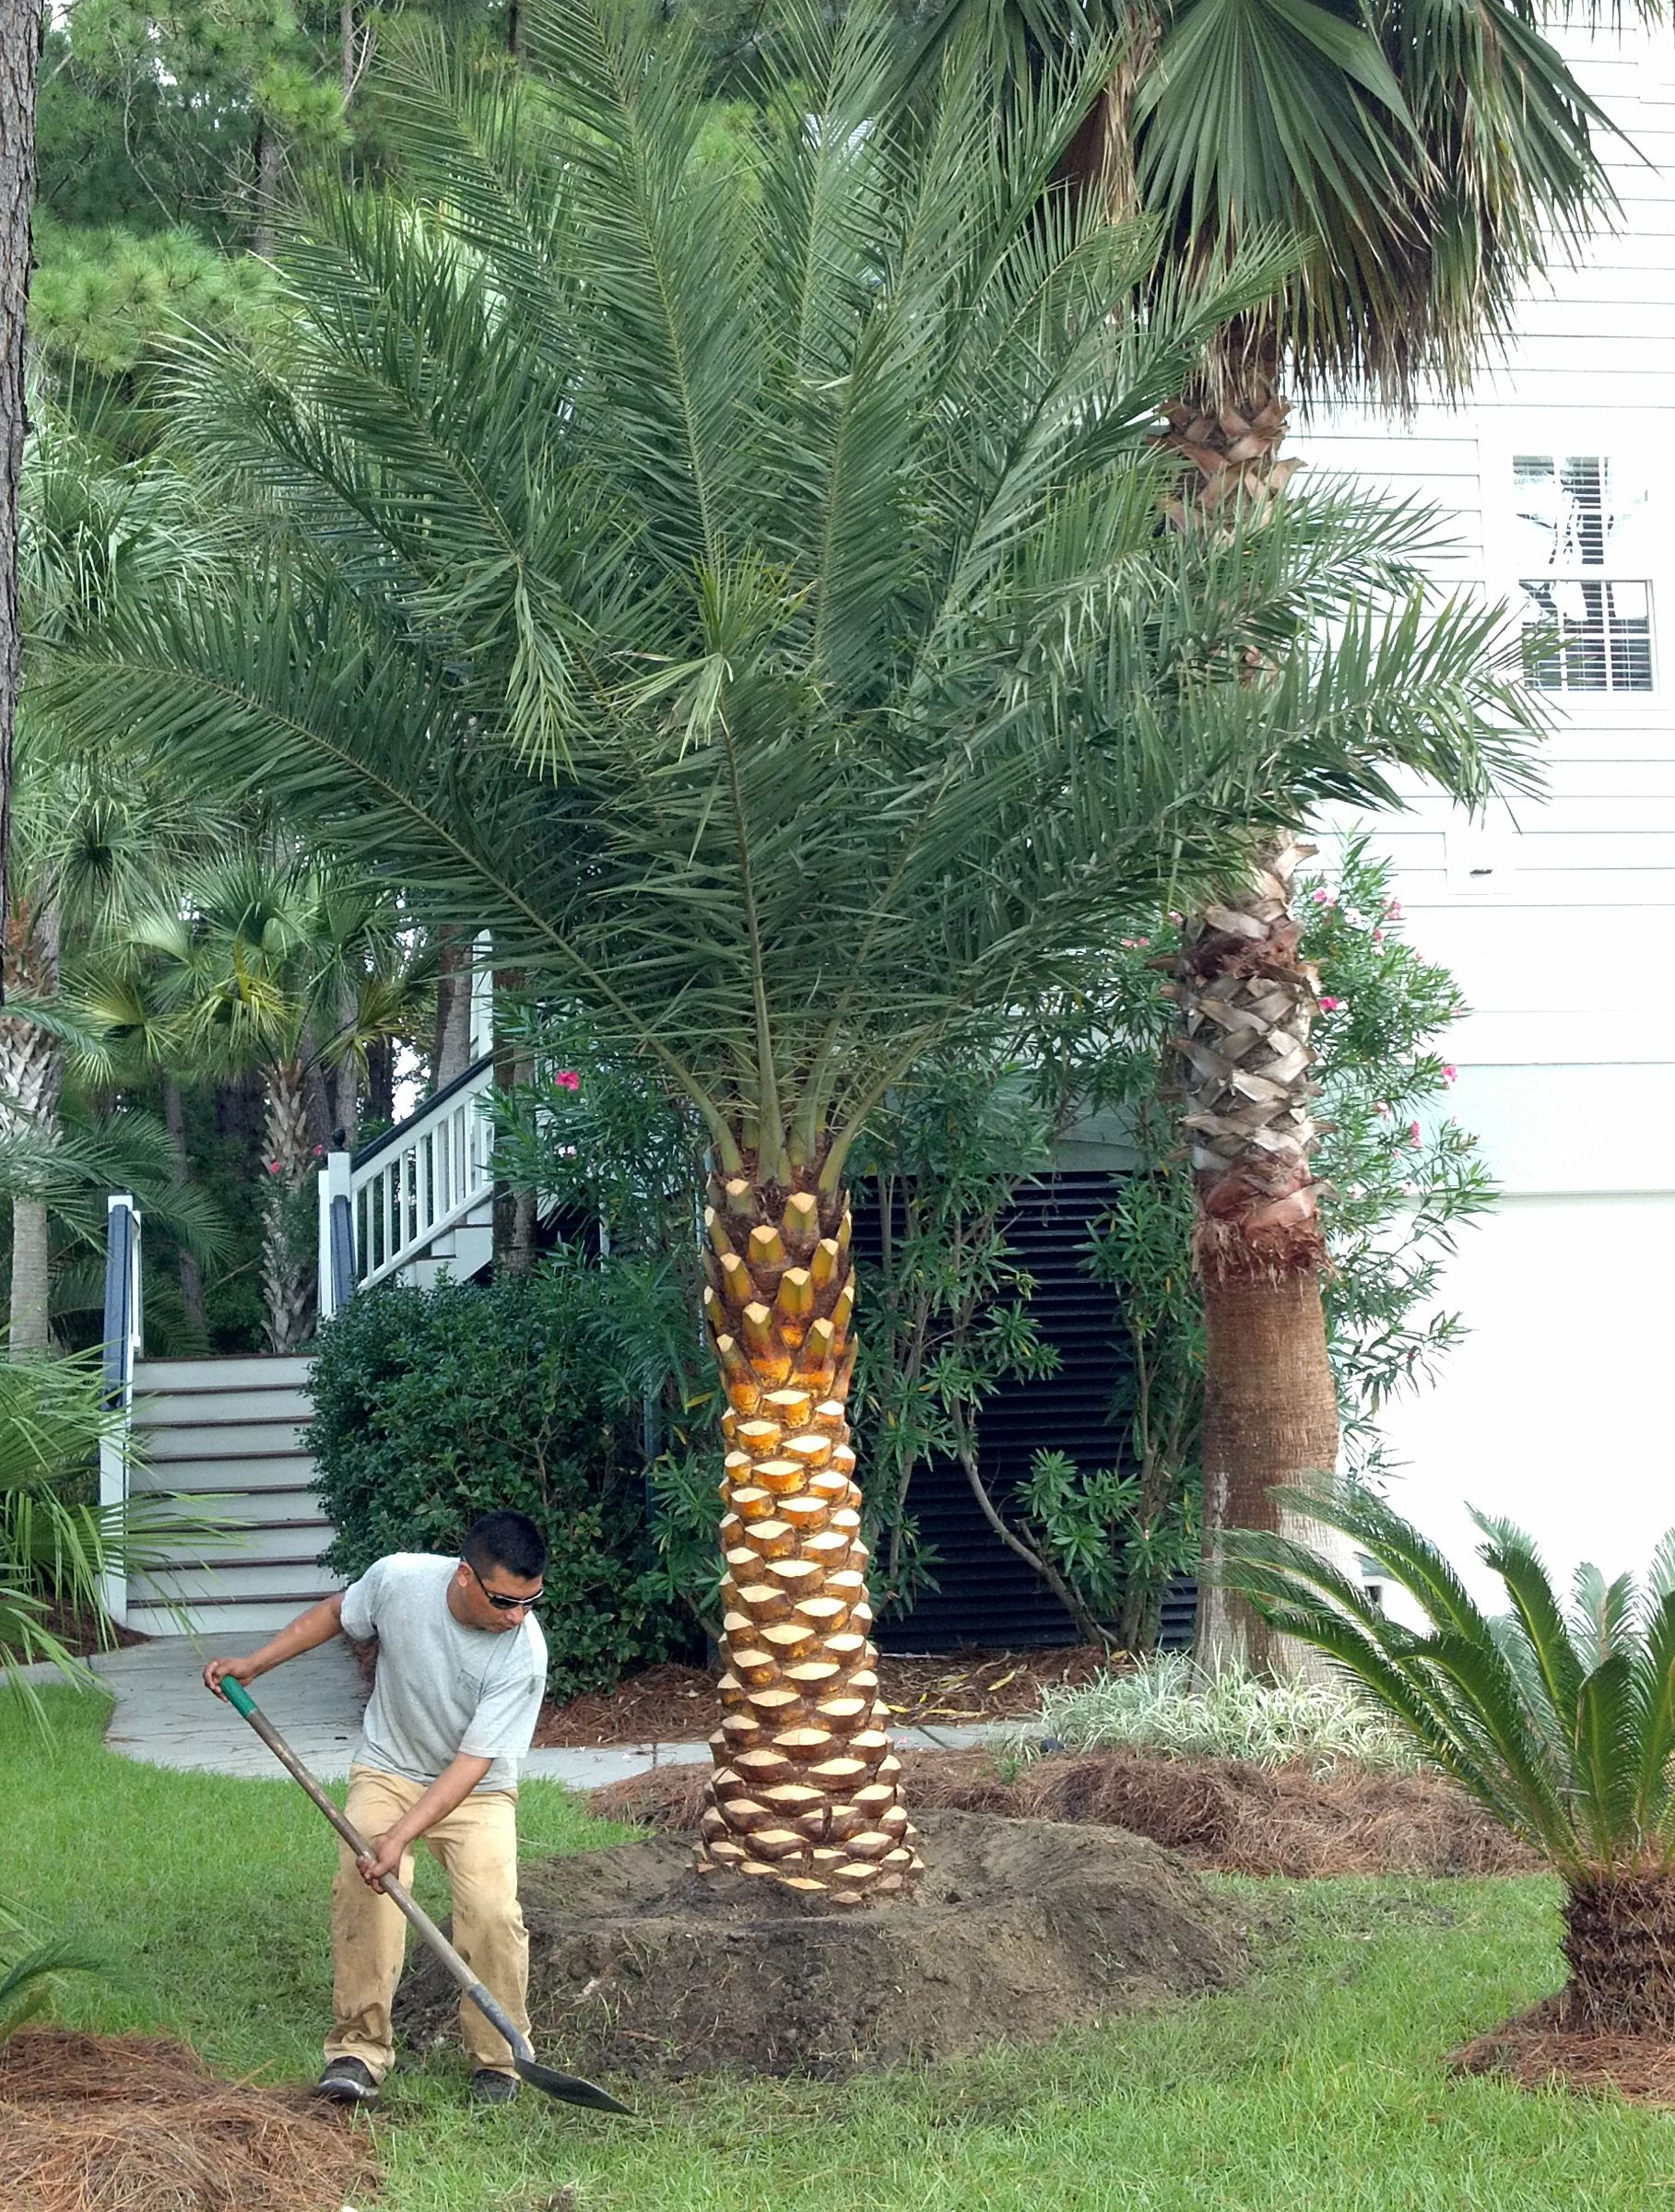 phoenix sylvestris prune trunk - Google Search | Palms | Pinterest ...